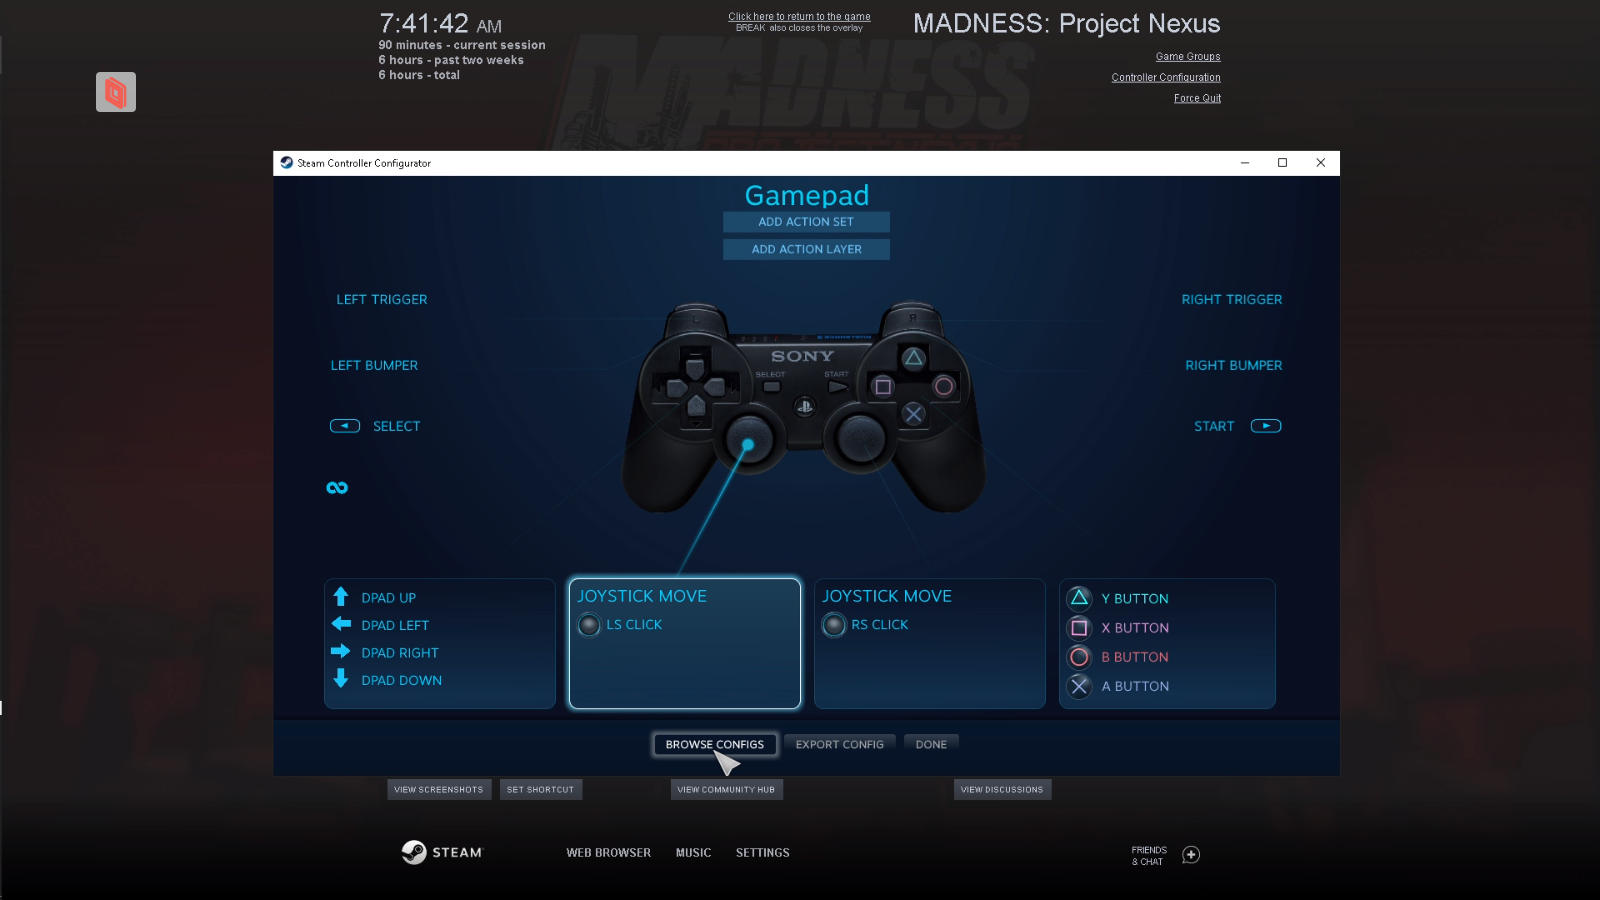 MADNESS: Project Nexus - Controller/Multiplayer Fix Guide - Browse and Templates - 2E68C6B